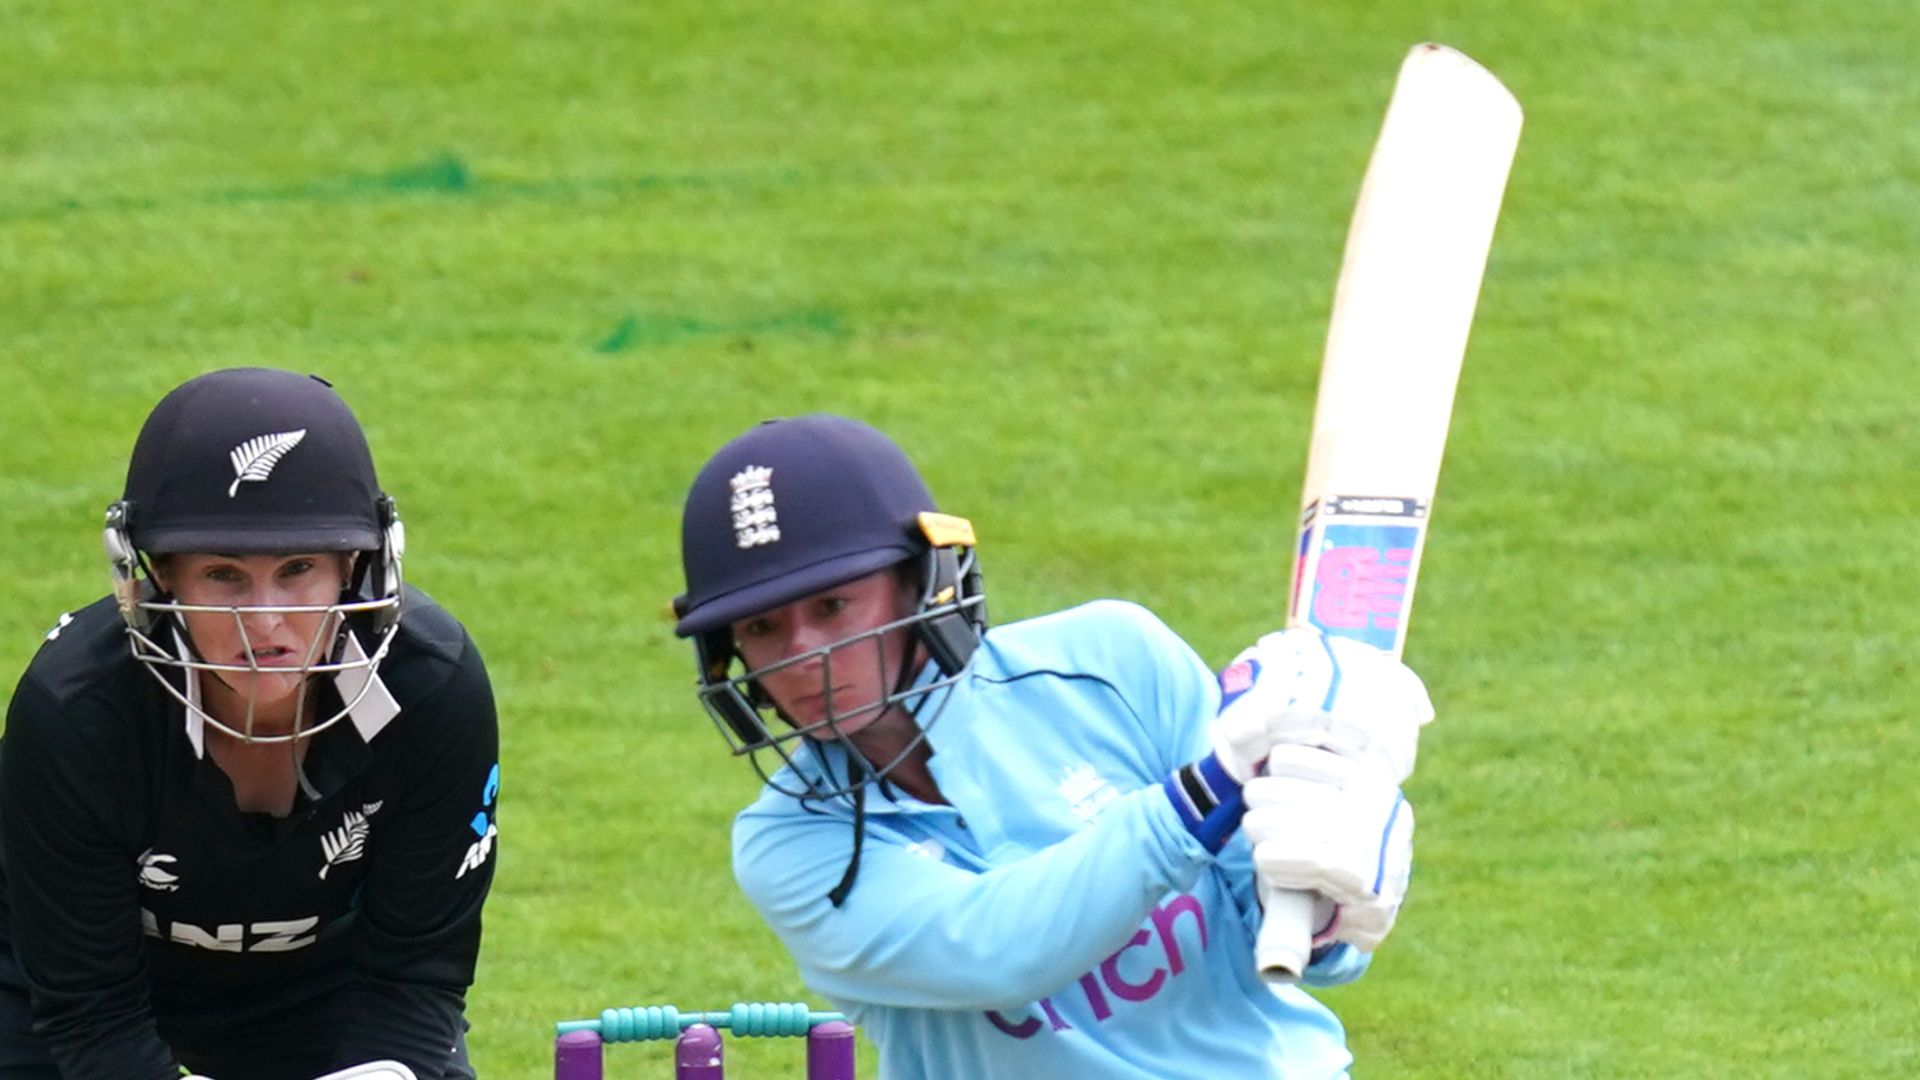 Wyatt targets more after playing 200th England game